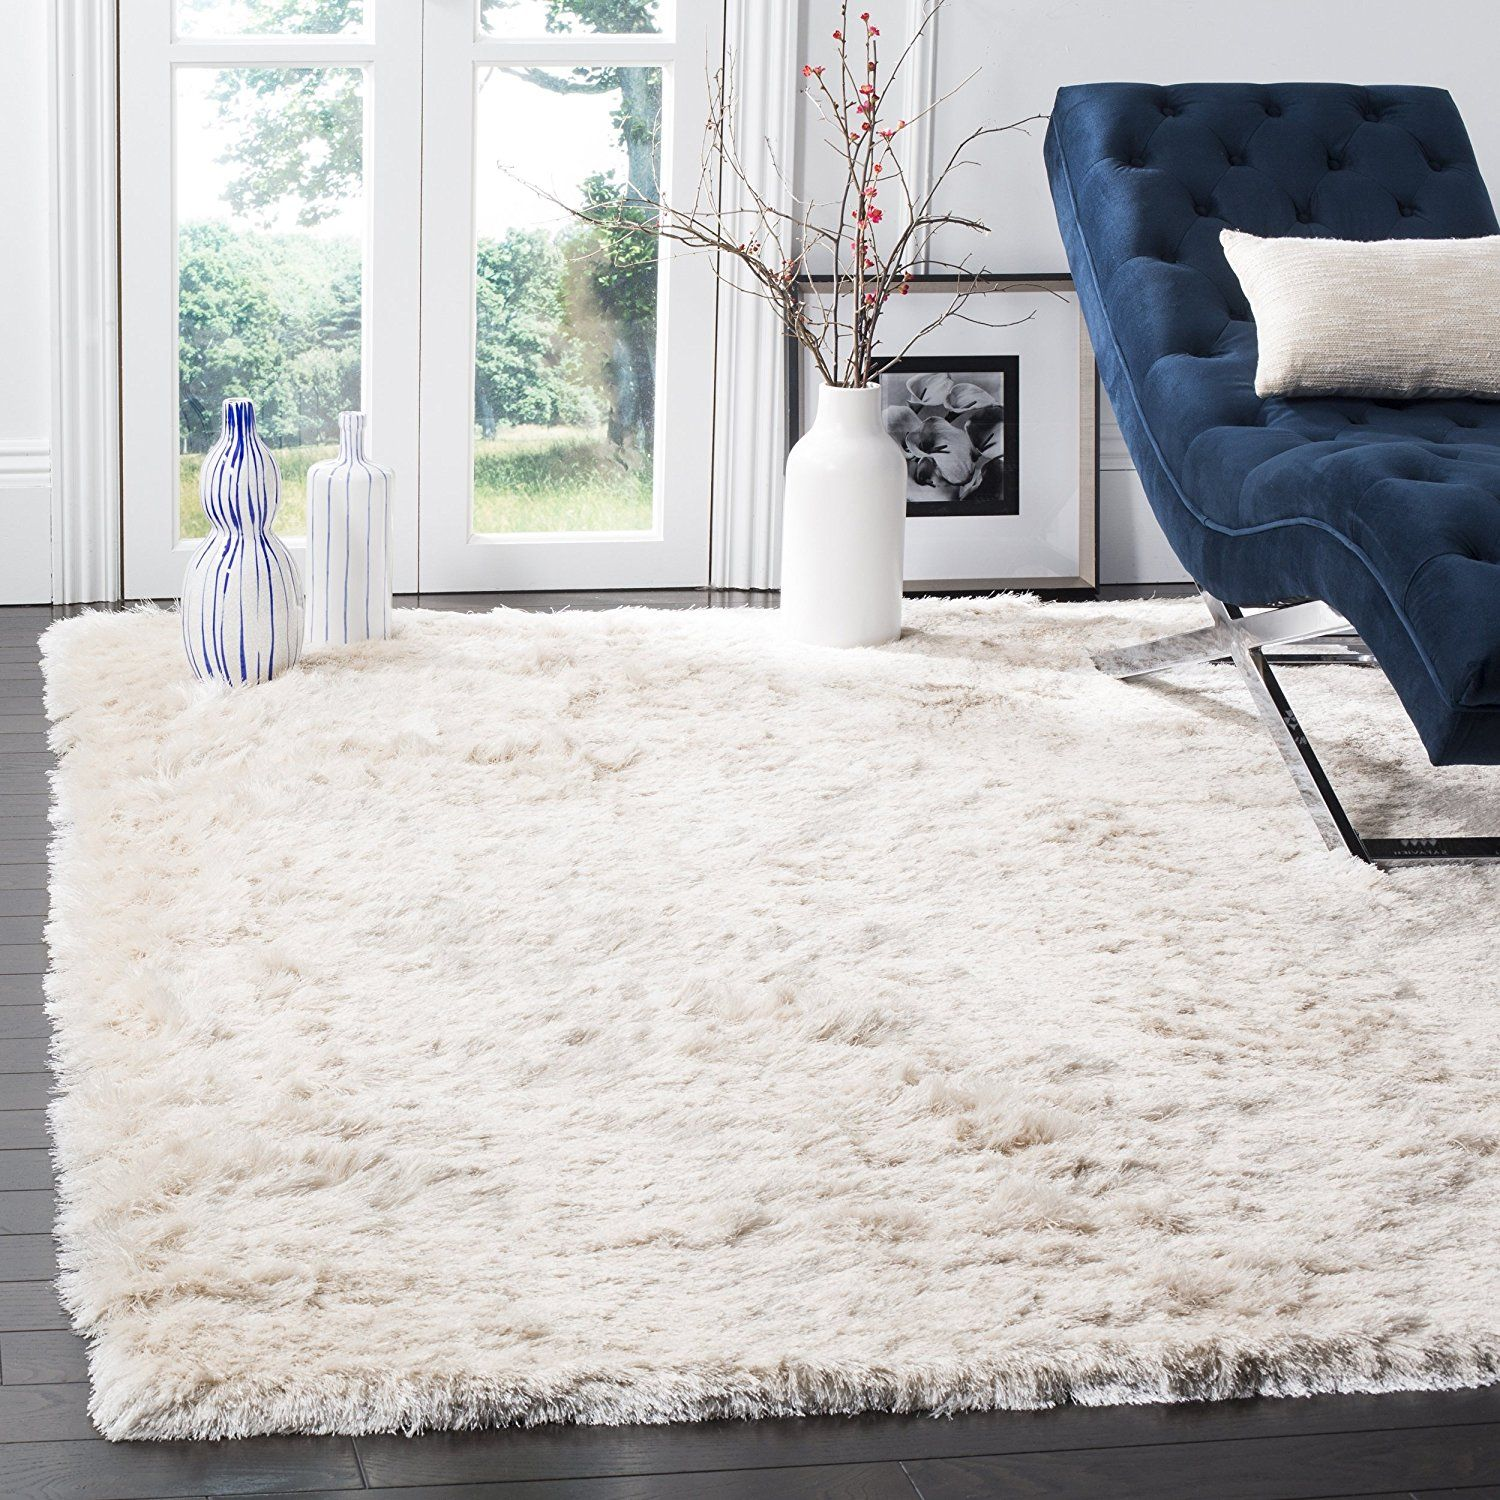 White shag rug affiliate link inexpensive rugs rugs area rugs rugs for sale cheap rugs rugs online cheap area rugs floor rugs discount rugs